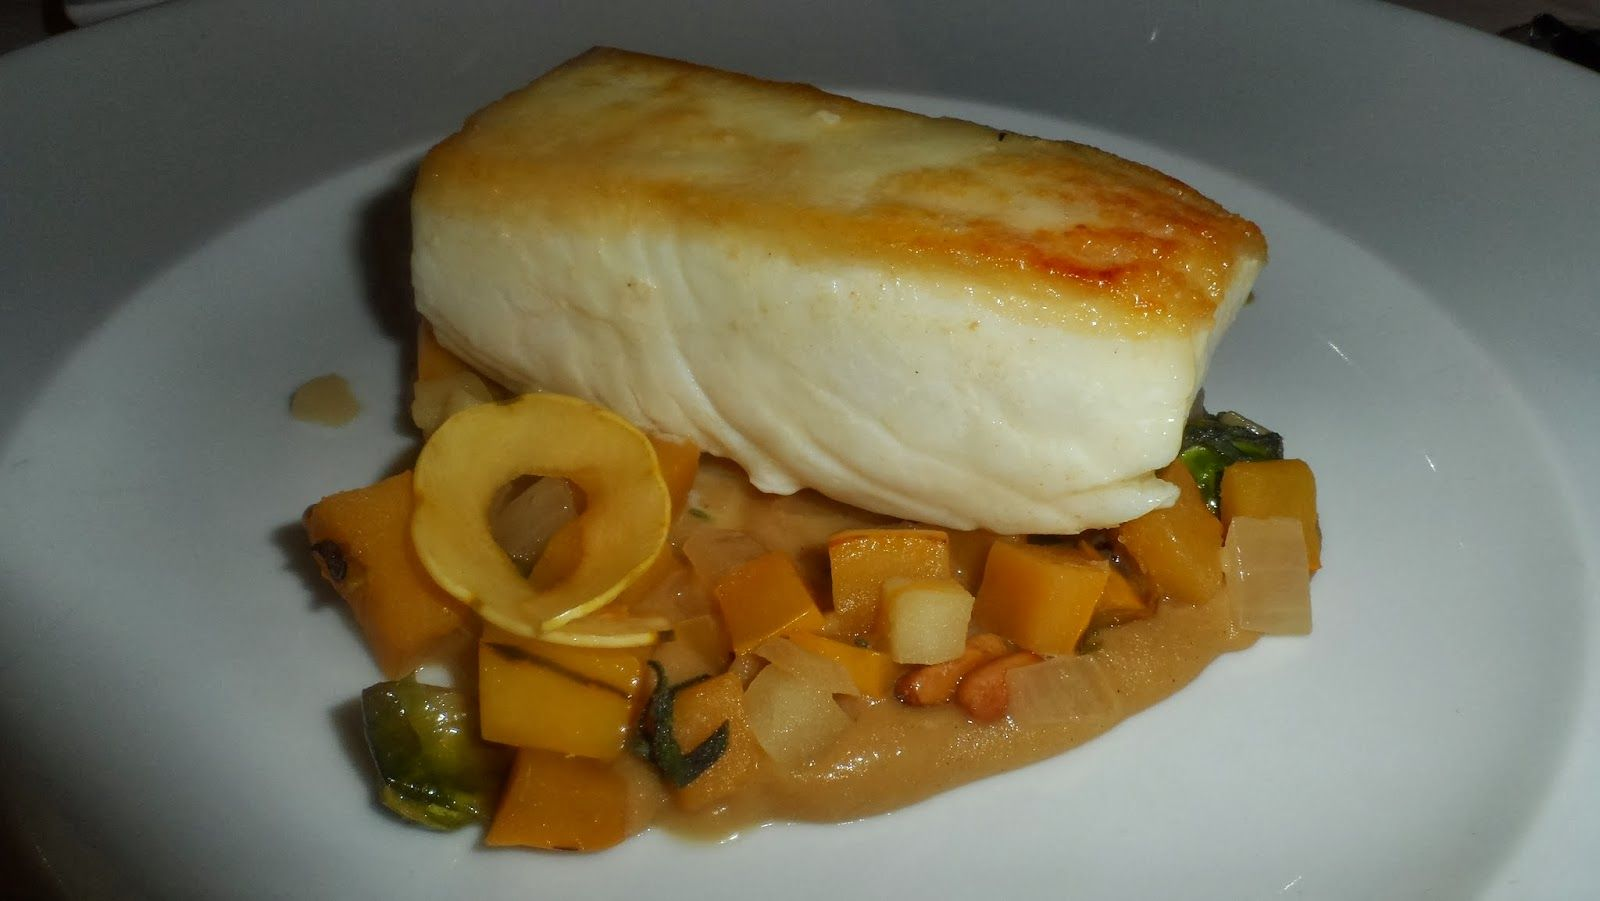 Travel with Teri B. : 2014 BEGINS WITH NEW YORK CITY CELEBRATION  ... Roasted Halibut